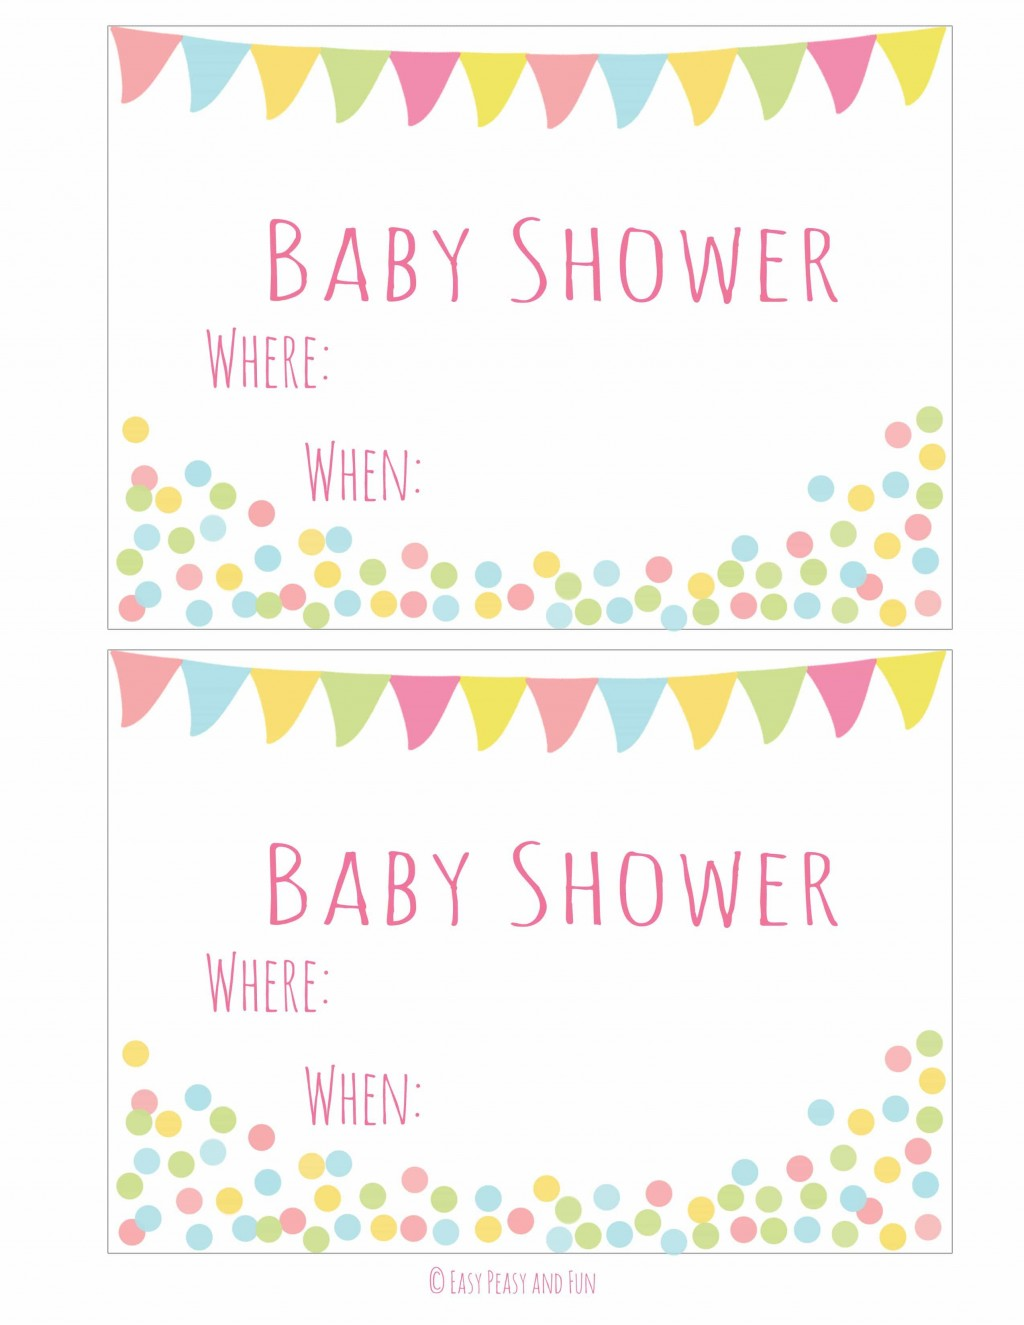 004 Unique Baby Shower Template Free Printable High Definition  Superhero Invitation For A Boy DiaperLarge